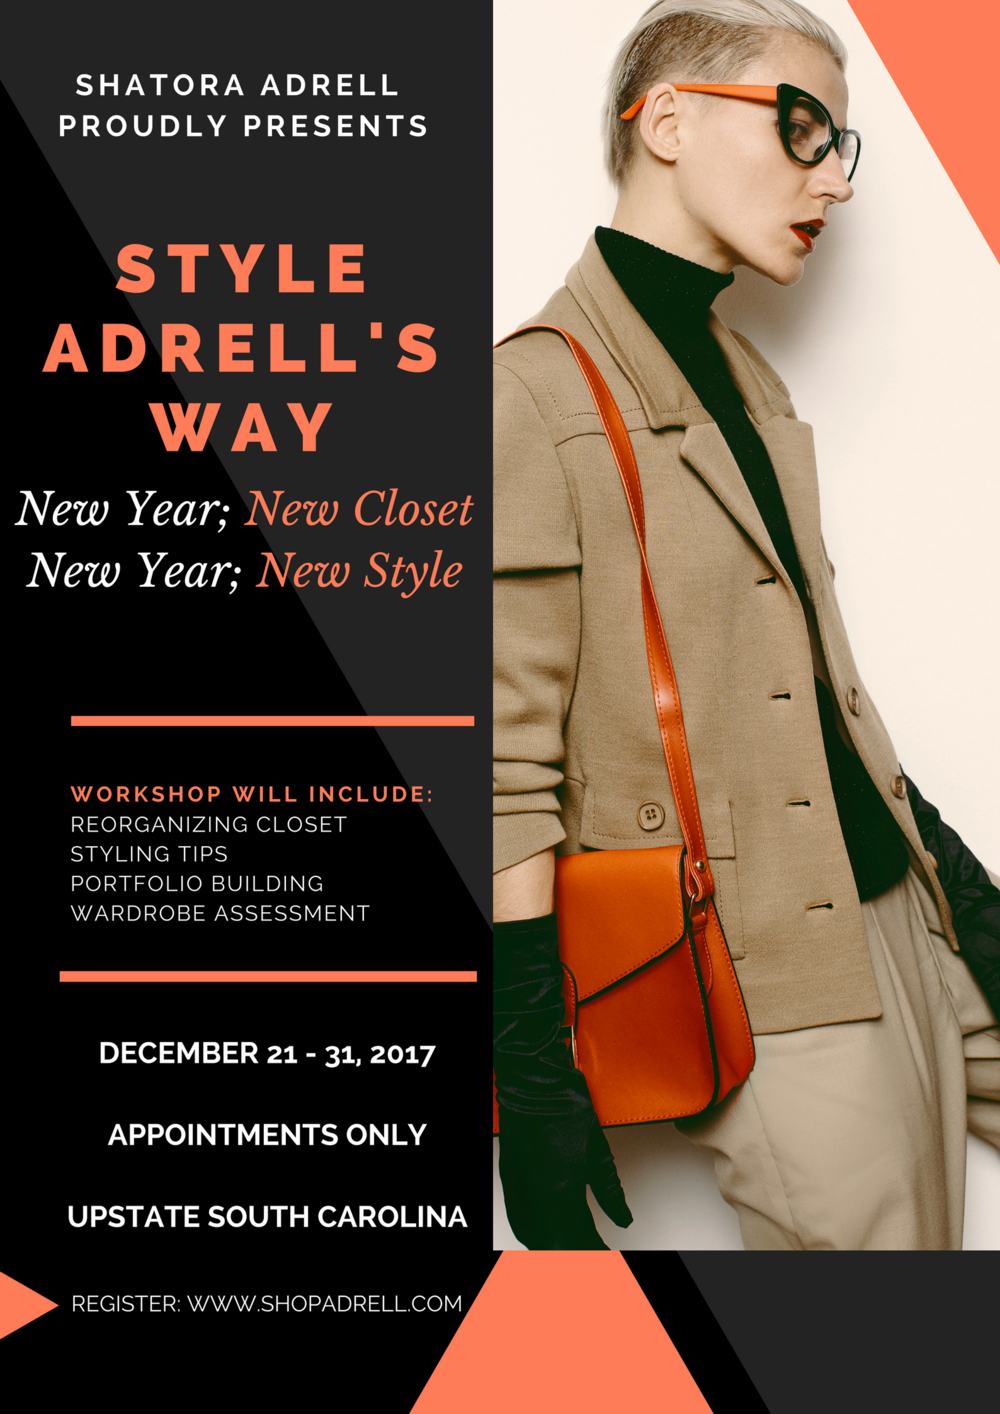 Style Adrell's Way is a 1-0n-1 session with Shatora Adrell where she comes in to either reorganize your closet, portfolio build, do a wardrobe assessment and/or go over styling tips. To Register:https://www.paypal.me/ShatoraAdrell Everything starts at: Reorganizing Closet: $100 and up Styling Tips: $50 and up Portfolio Building: $50 and up Wardrobe Assessment: $50 and up